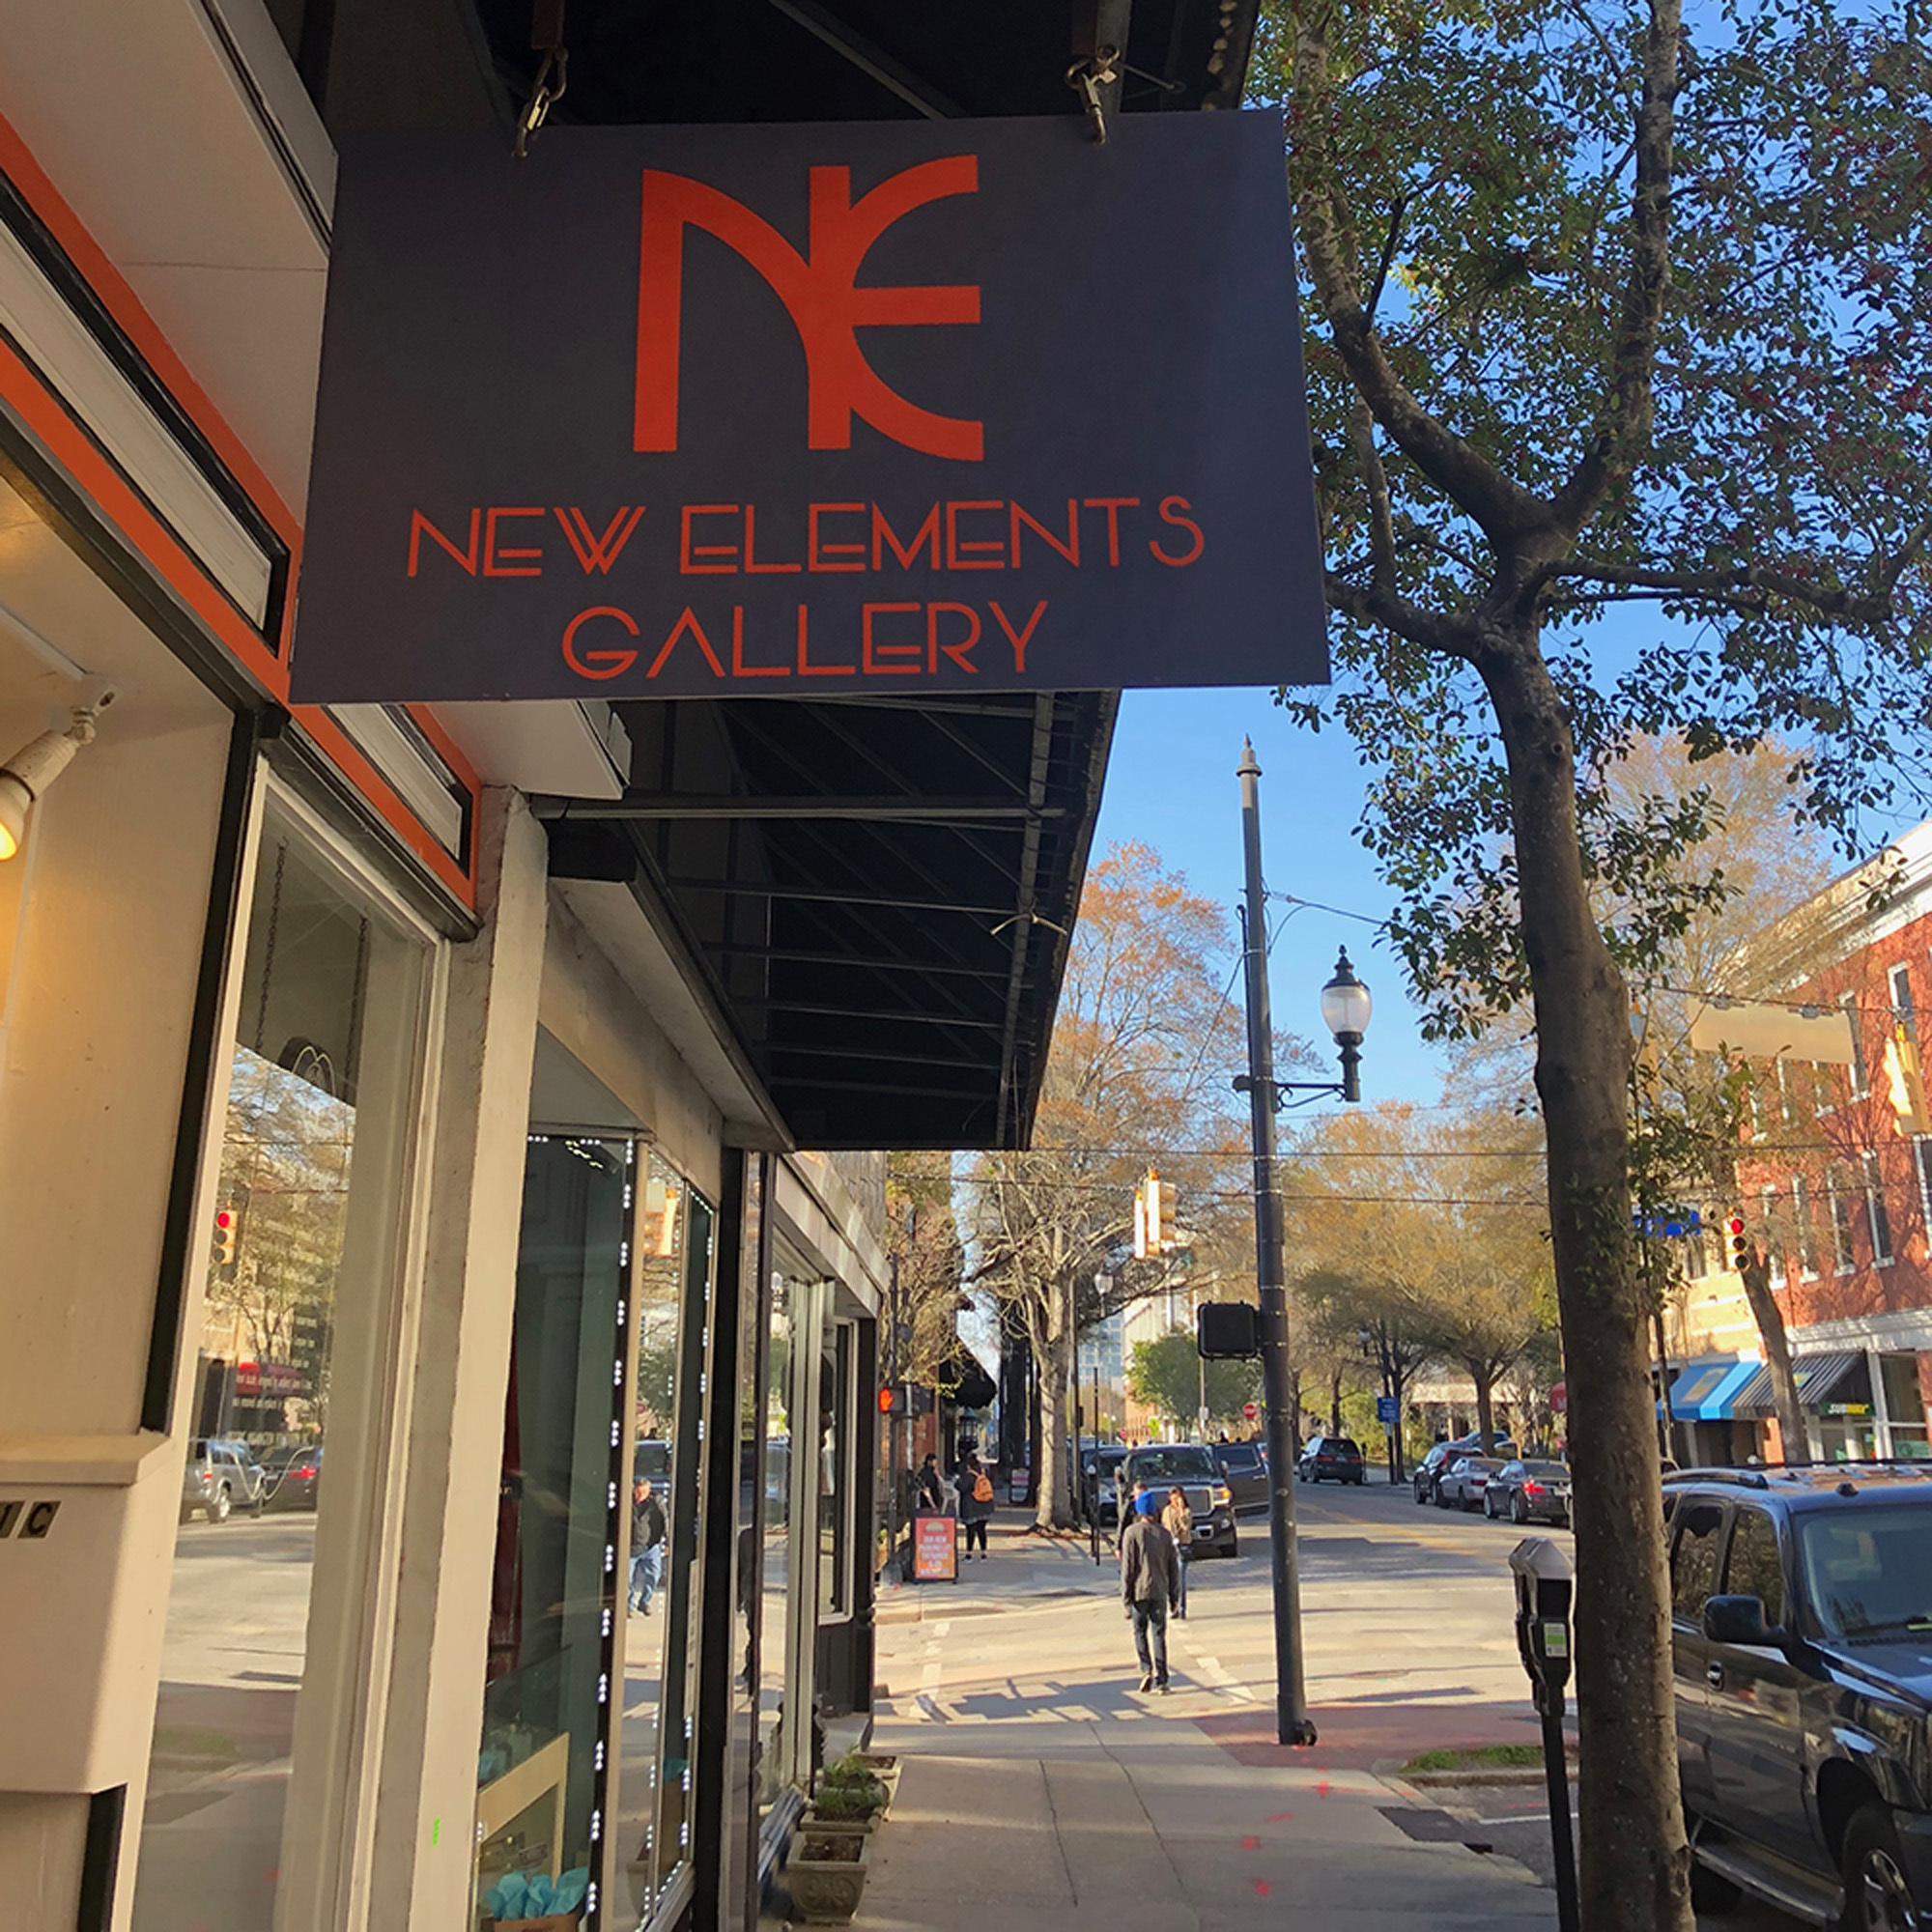 Wilmington-art-gallery-fourth-friday.jpg?mtime=20190221205447#asset:104934